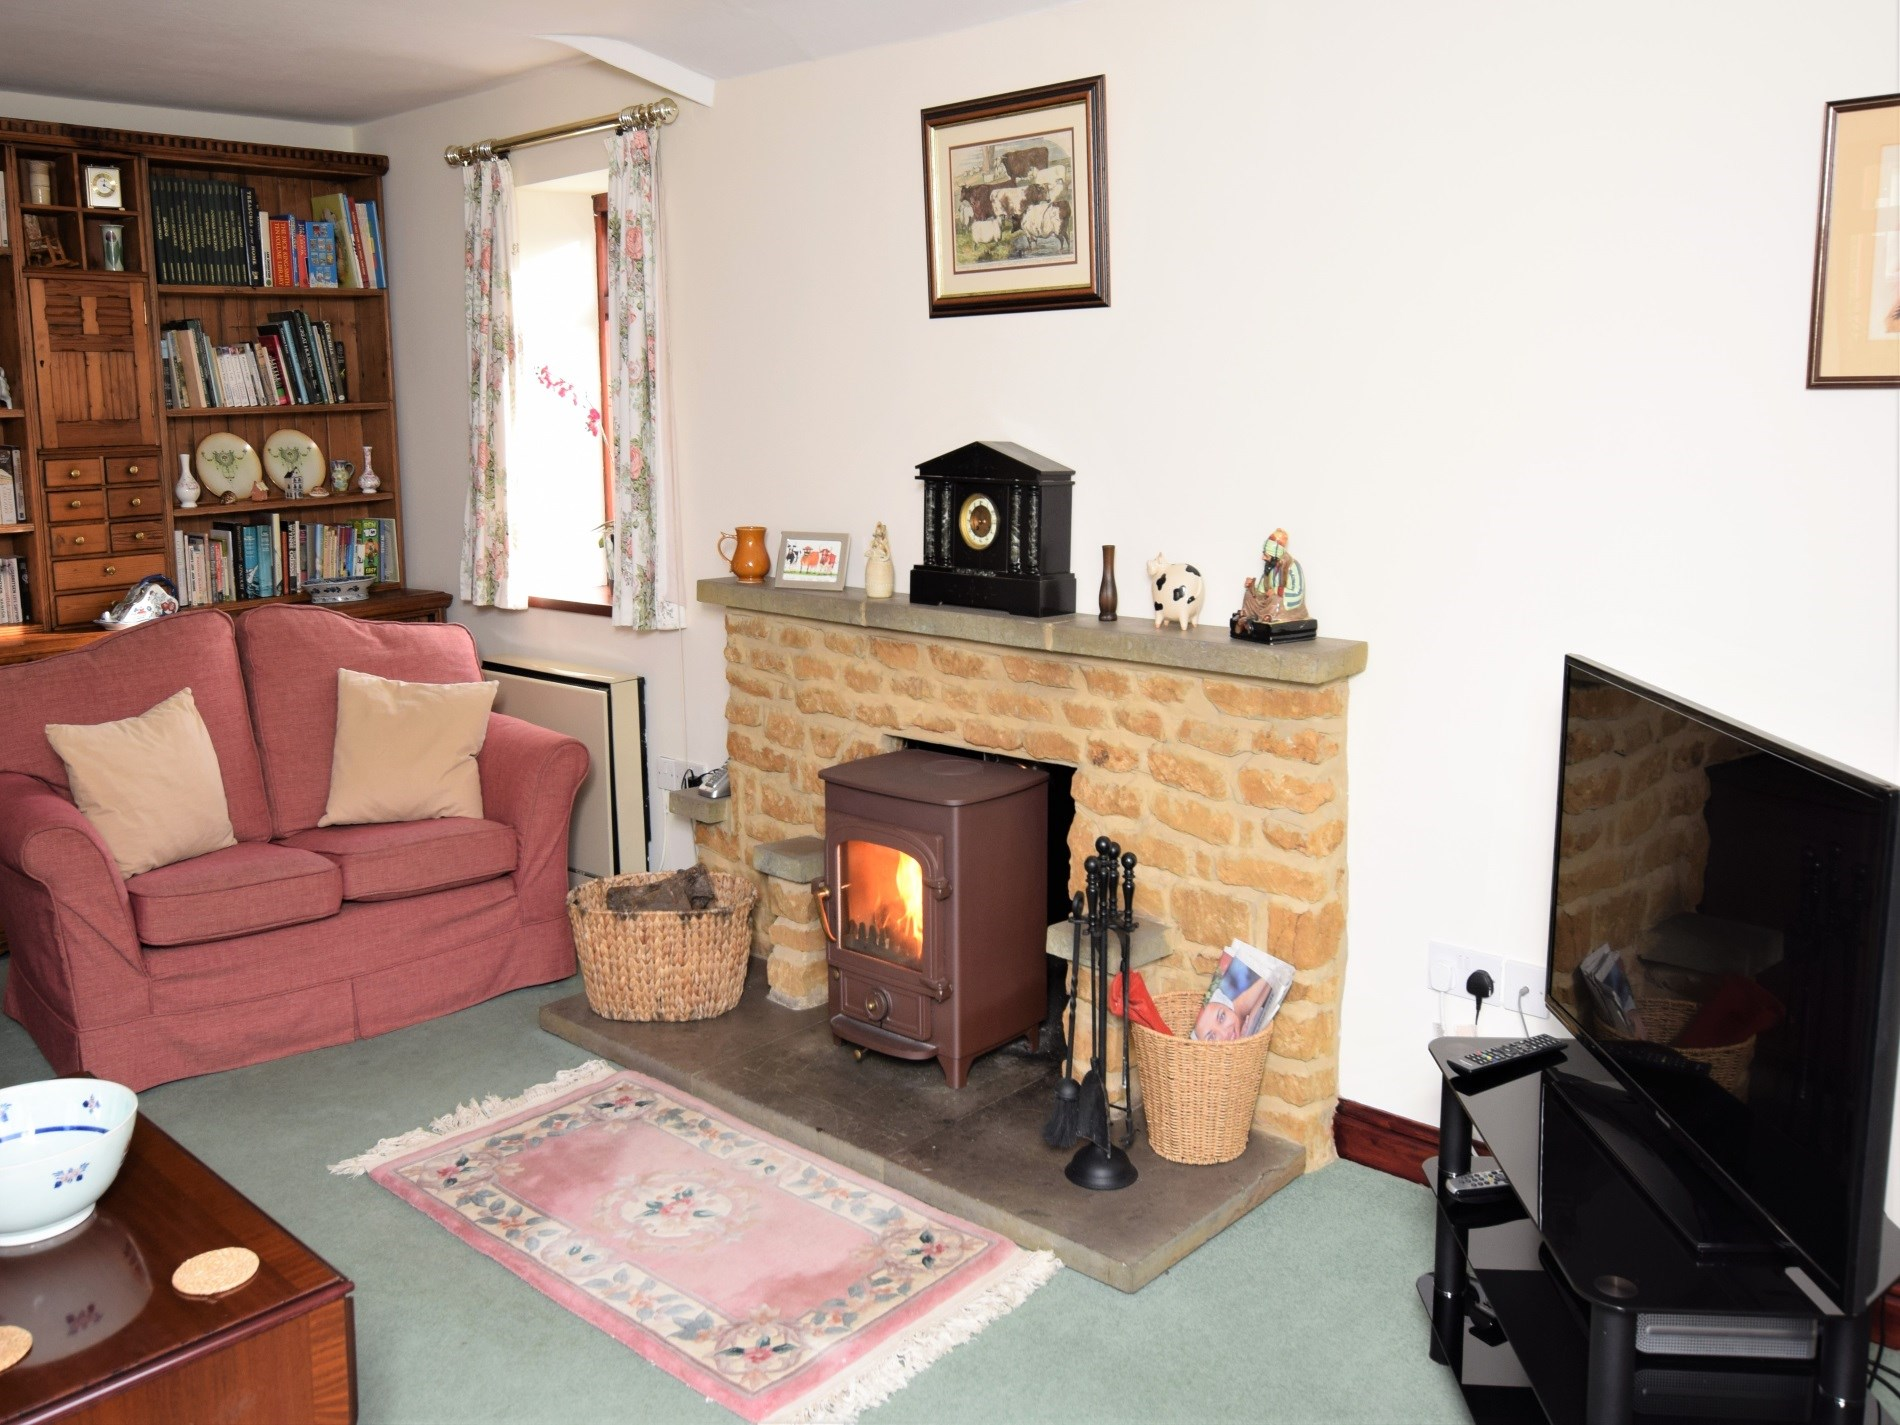 3 Bedroom Cottage in Banbury, Heart of England